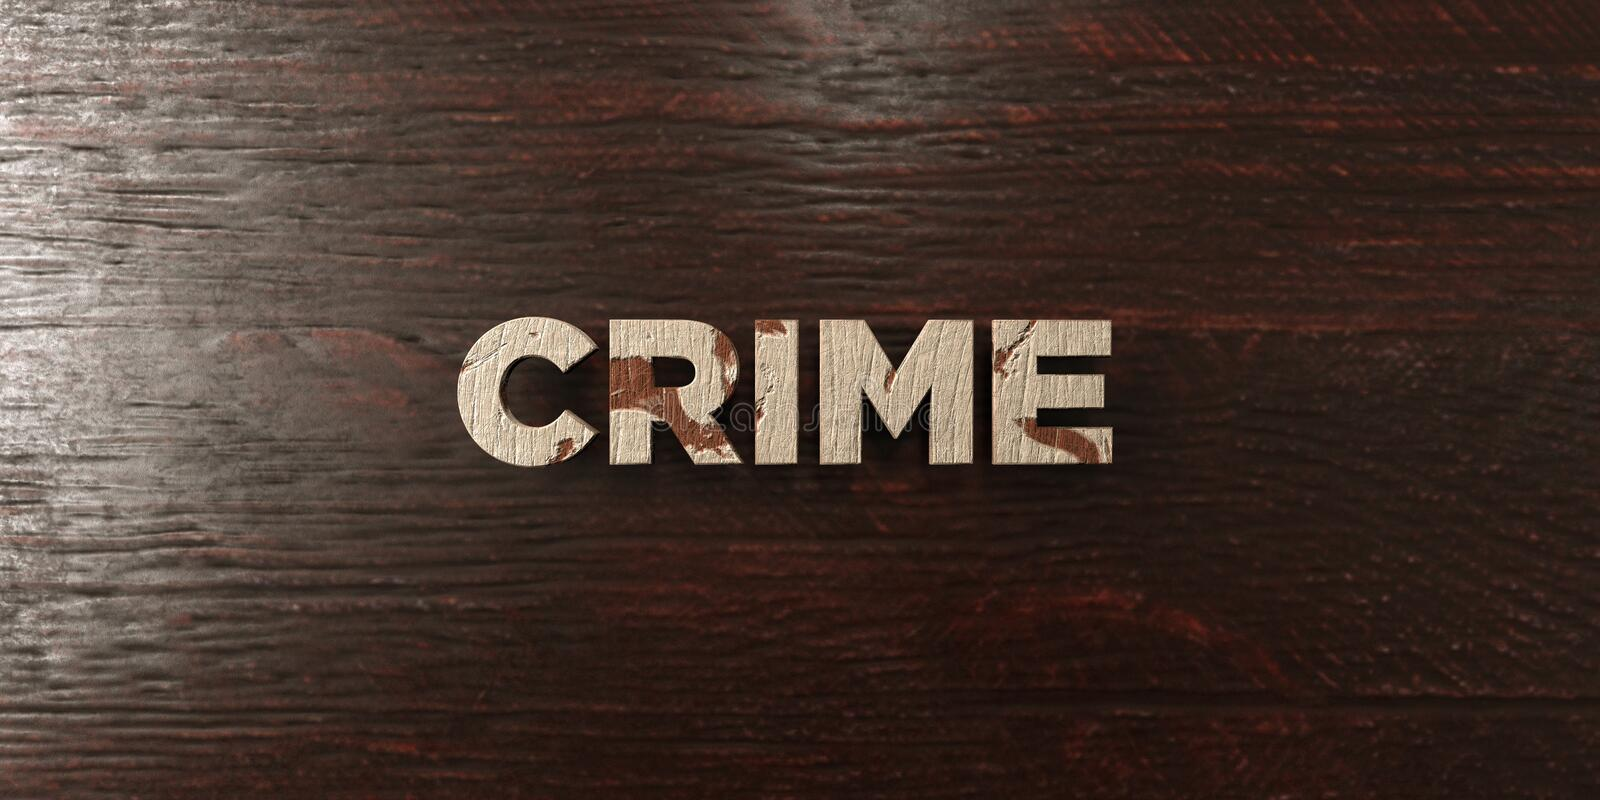 Crime - titre en bois sale sur l'érable - image courante gratuite de redevance rendue par 3D illustration stock